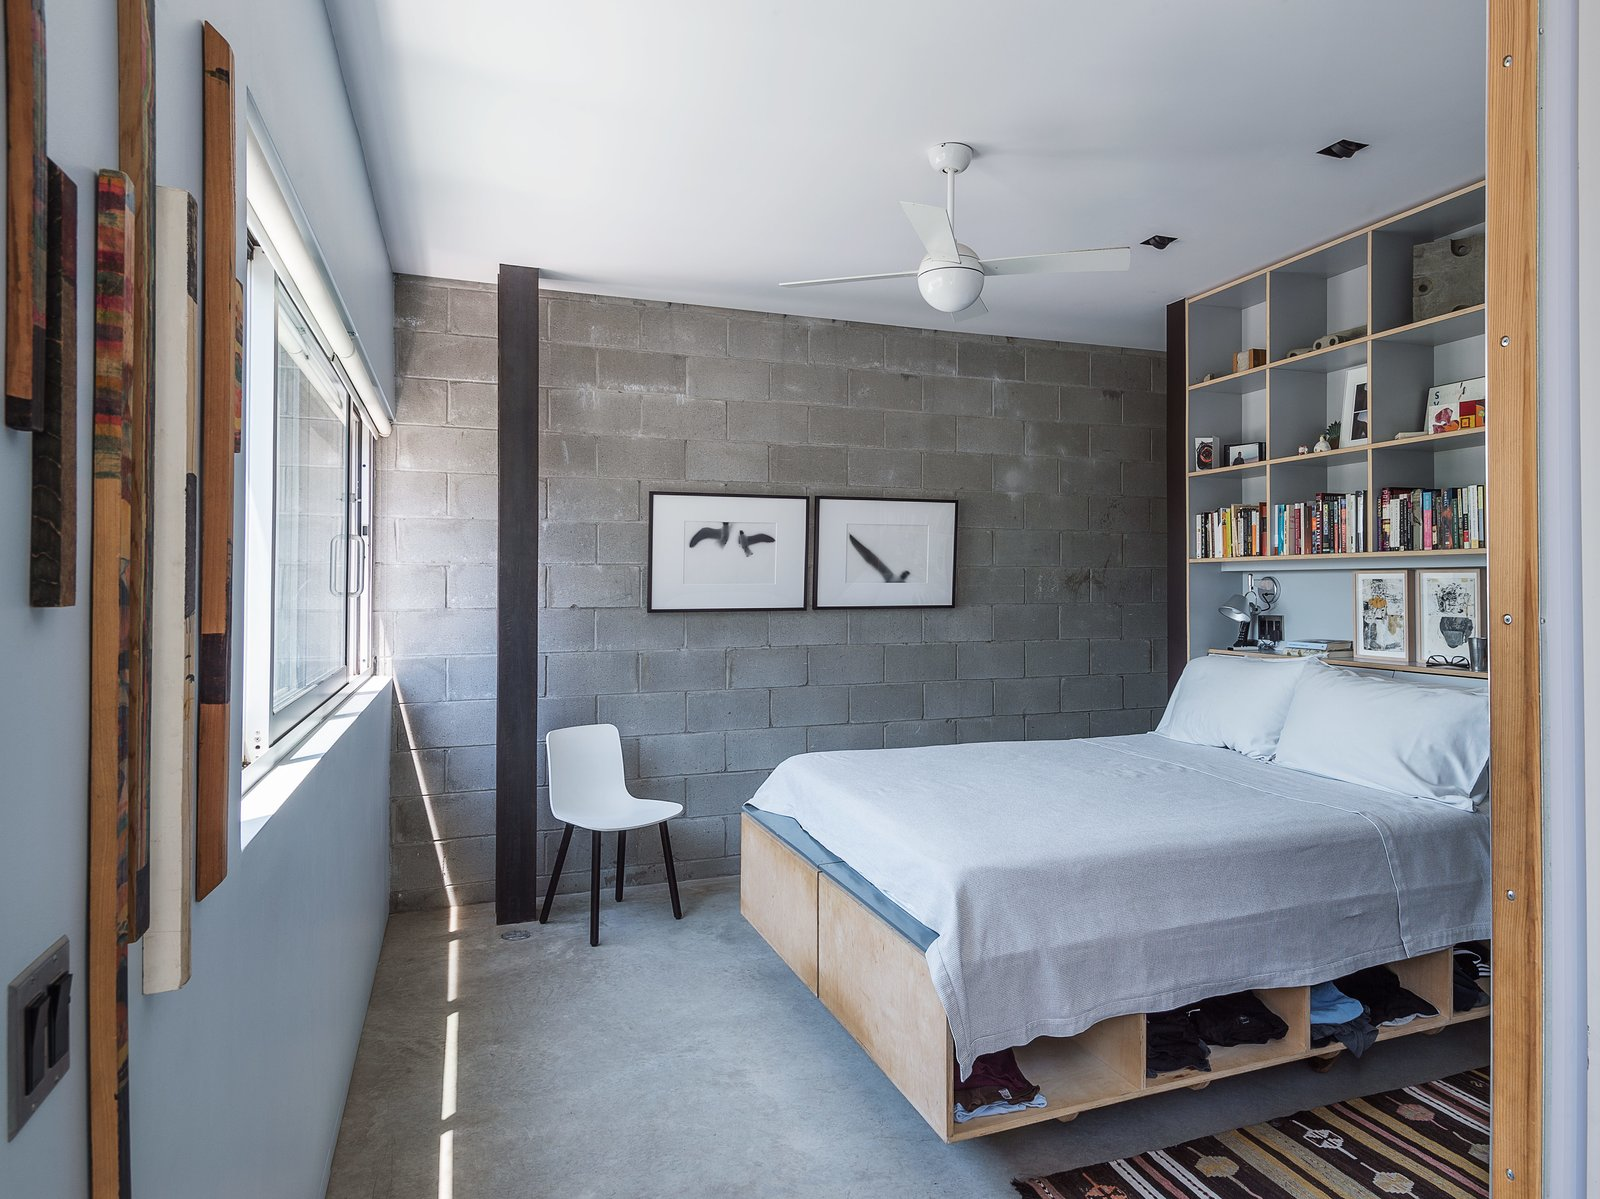 Bedroom, Bed, Chair, Ceiling Lighting, and Concrete Floor Baumann designed the plywood bed frame and shelving unit in the master bedroom, adjacent to an exposed cinder-block wall, a new addition to the structure.   Bedroom